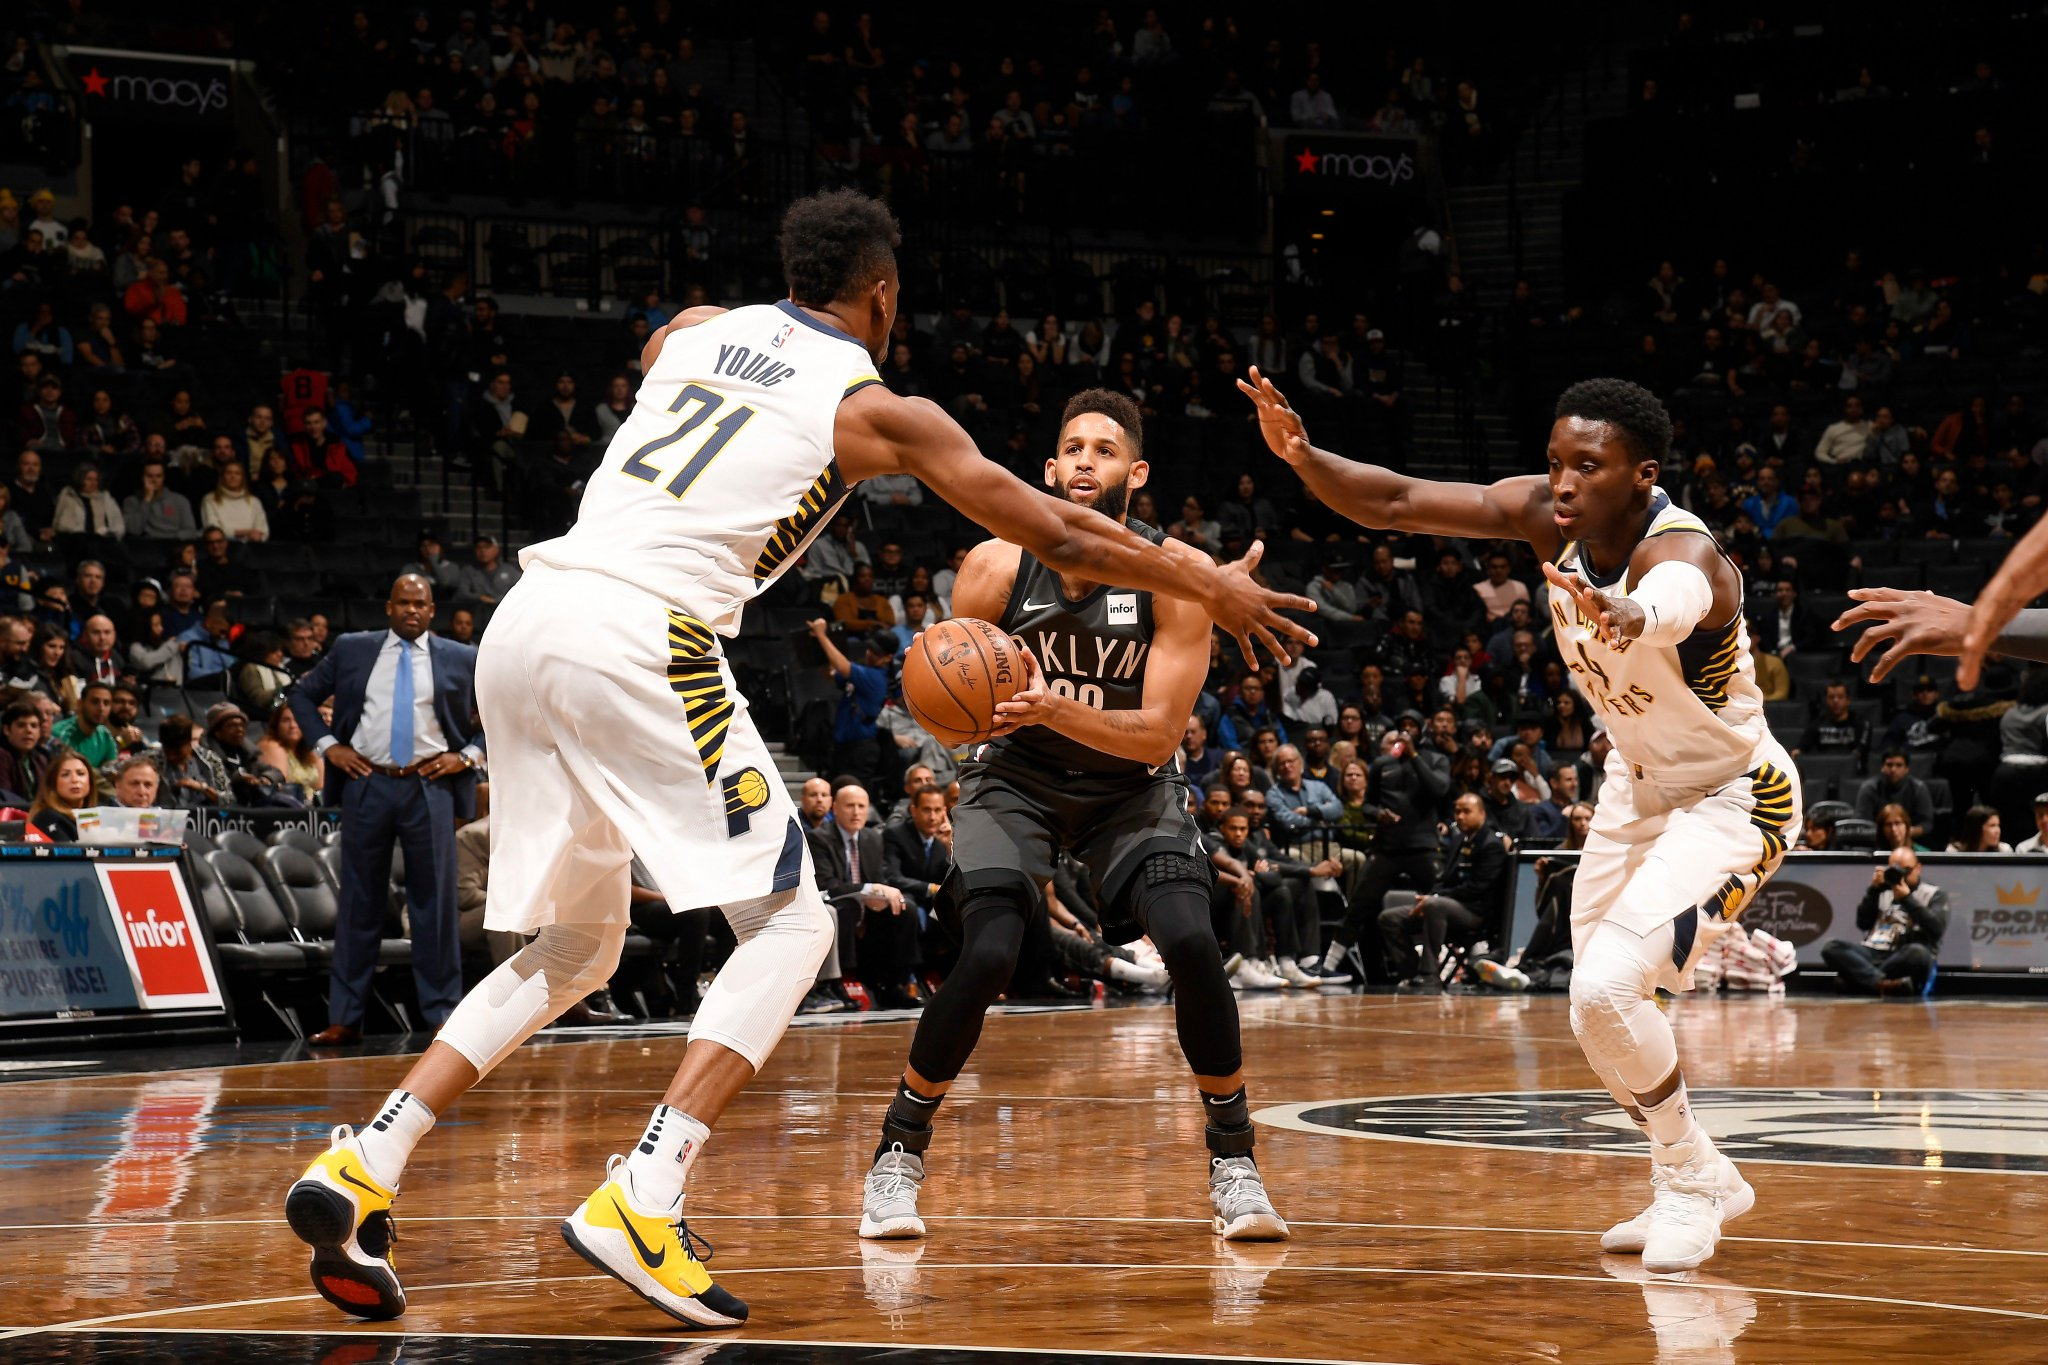 At the half, the @Pacers lead the @BrooklynNets 59-48.  Victor Oladipo: 15 PTS  Allen Crabbe: 17 PTS https://t.co/wyMIZ557cA